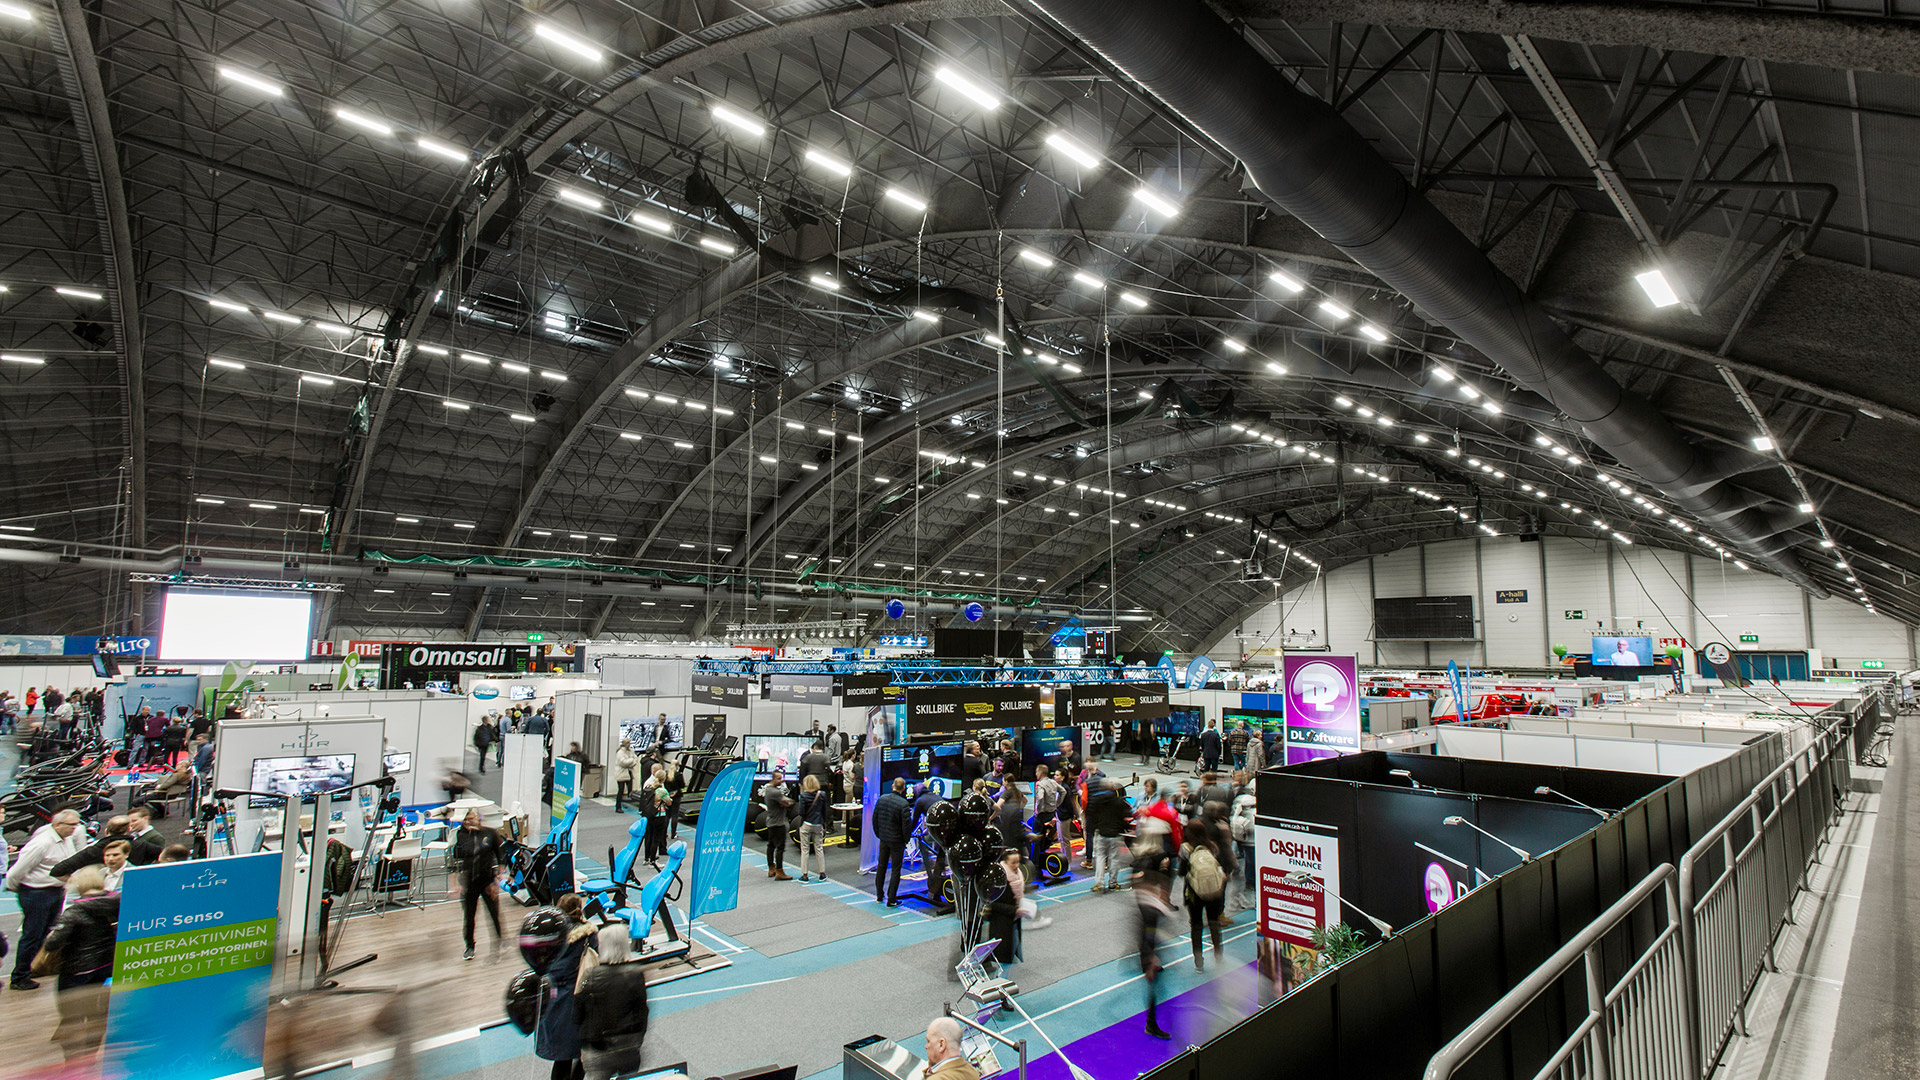 During a fair at Tampere Exhibition and Sports Centre, the control system is used to reduce the lighting levels of the hall to bring out the lighting design of the stands.